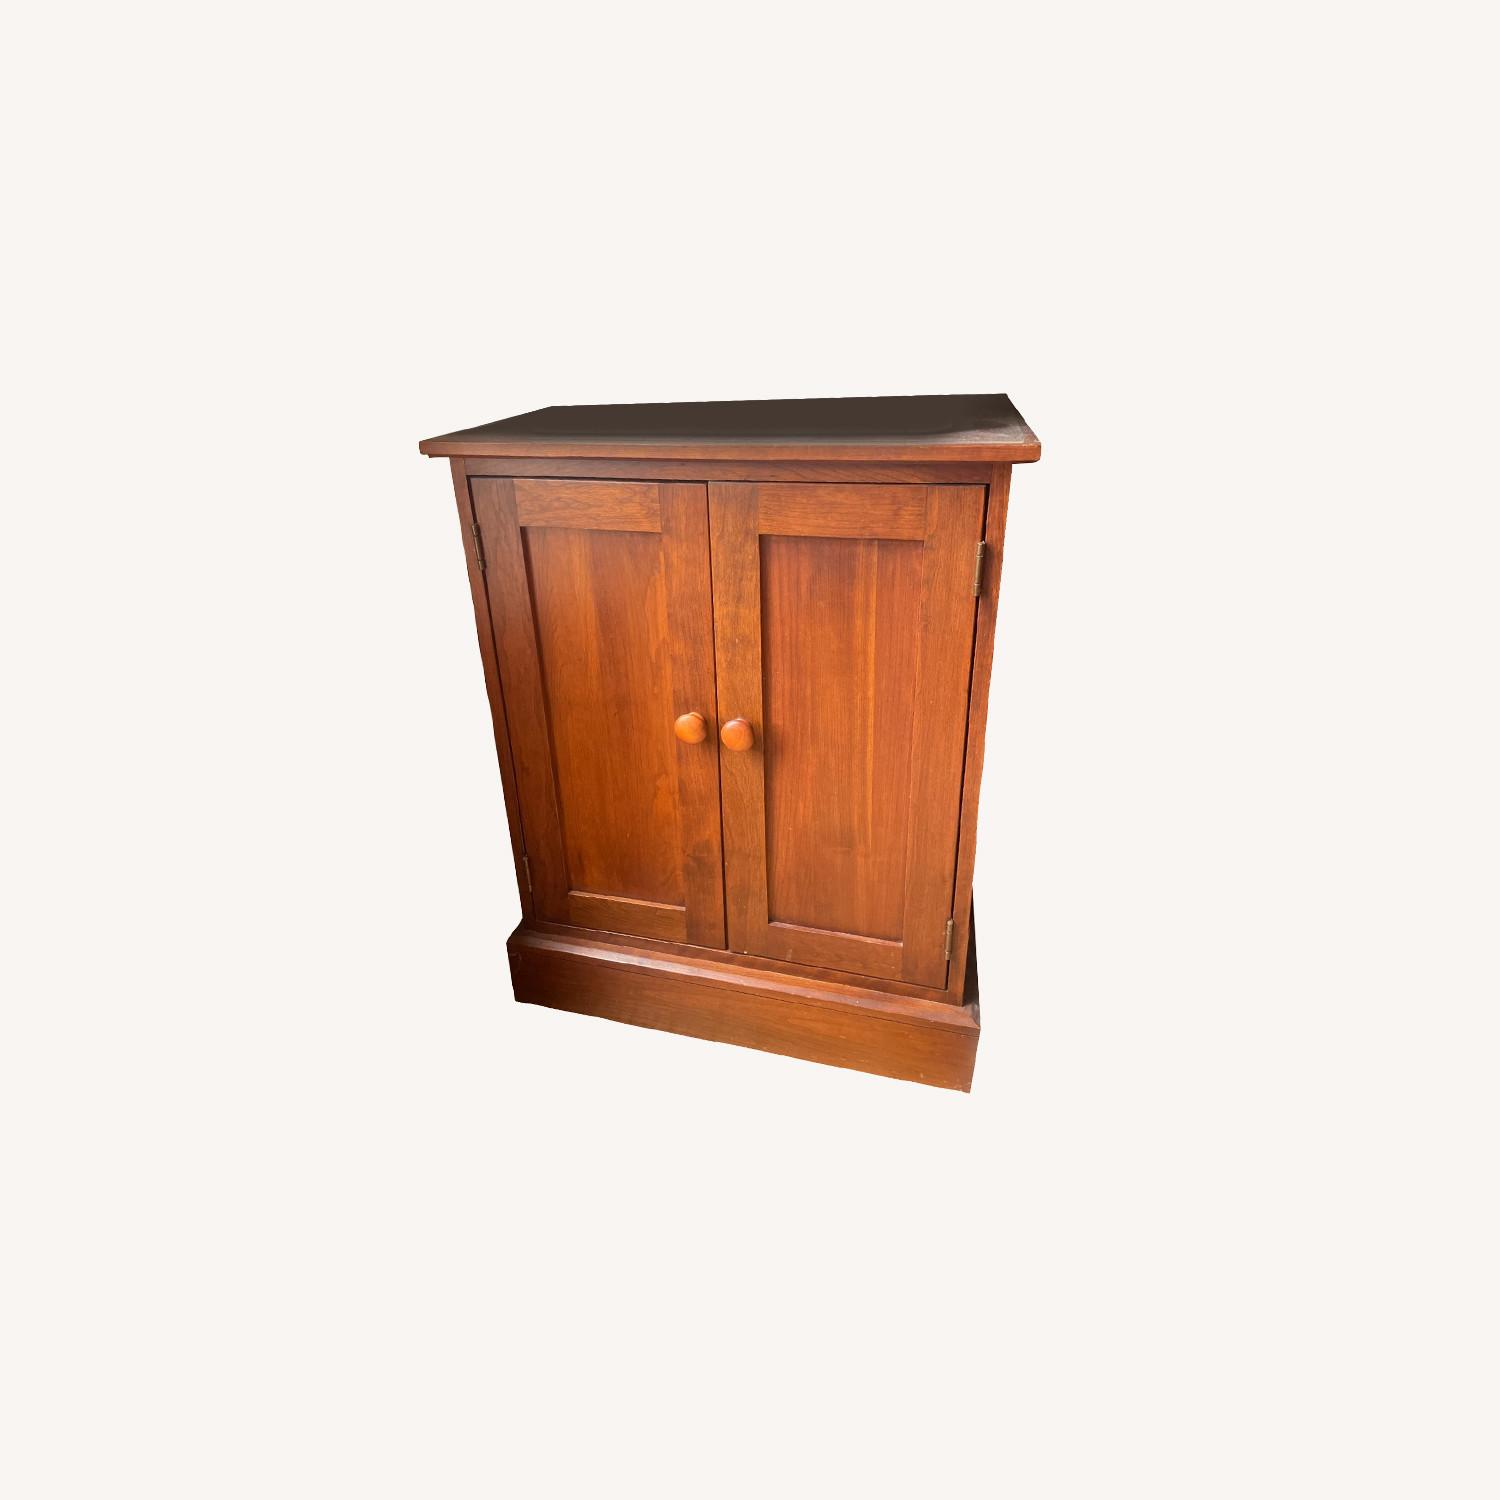 Ethan Allen Cherry Wood Office Table - image-0